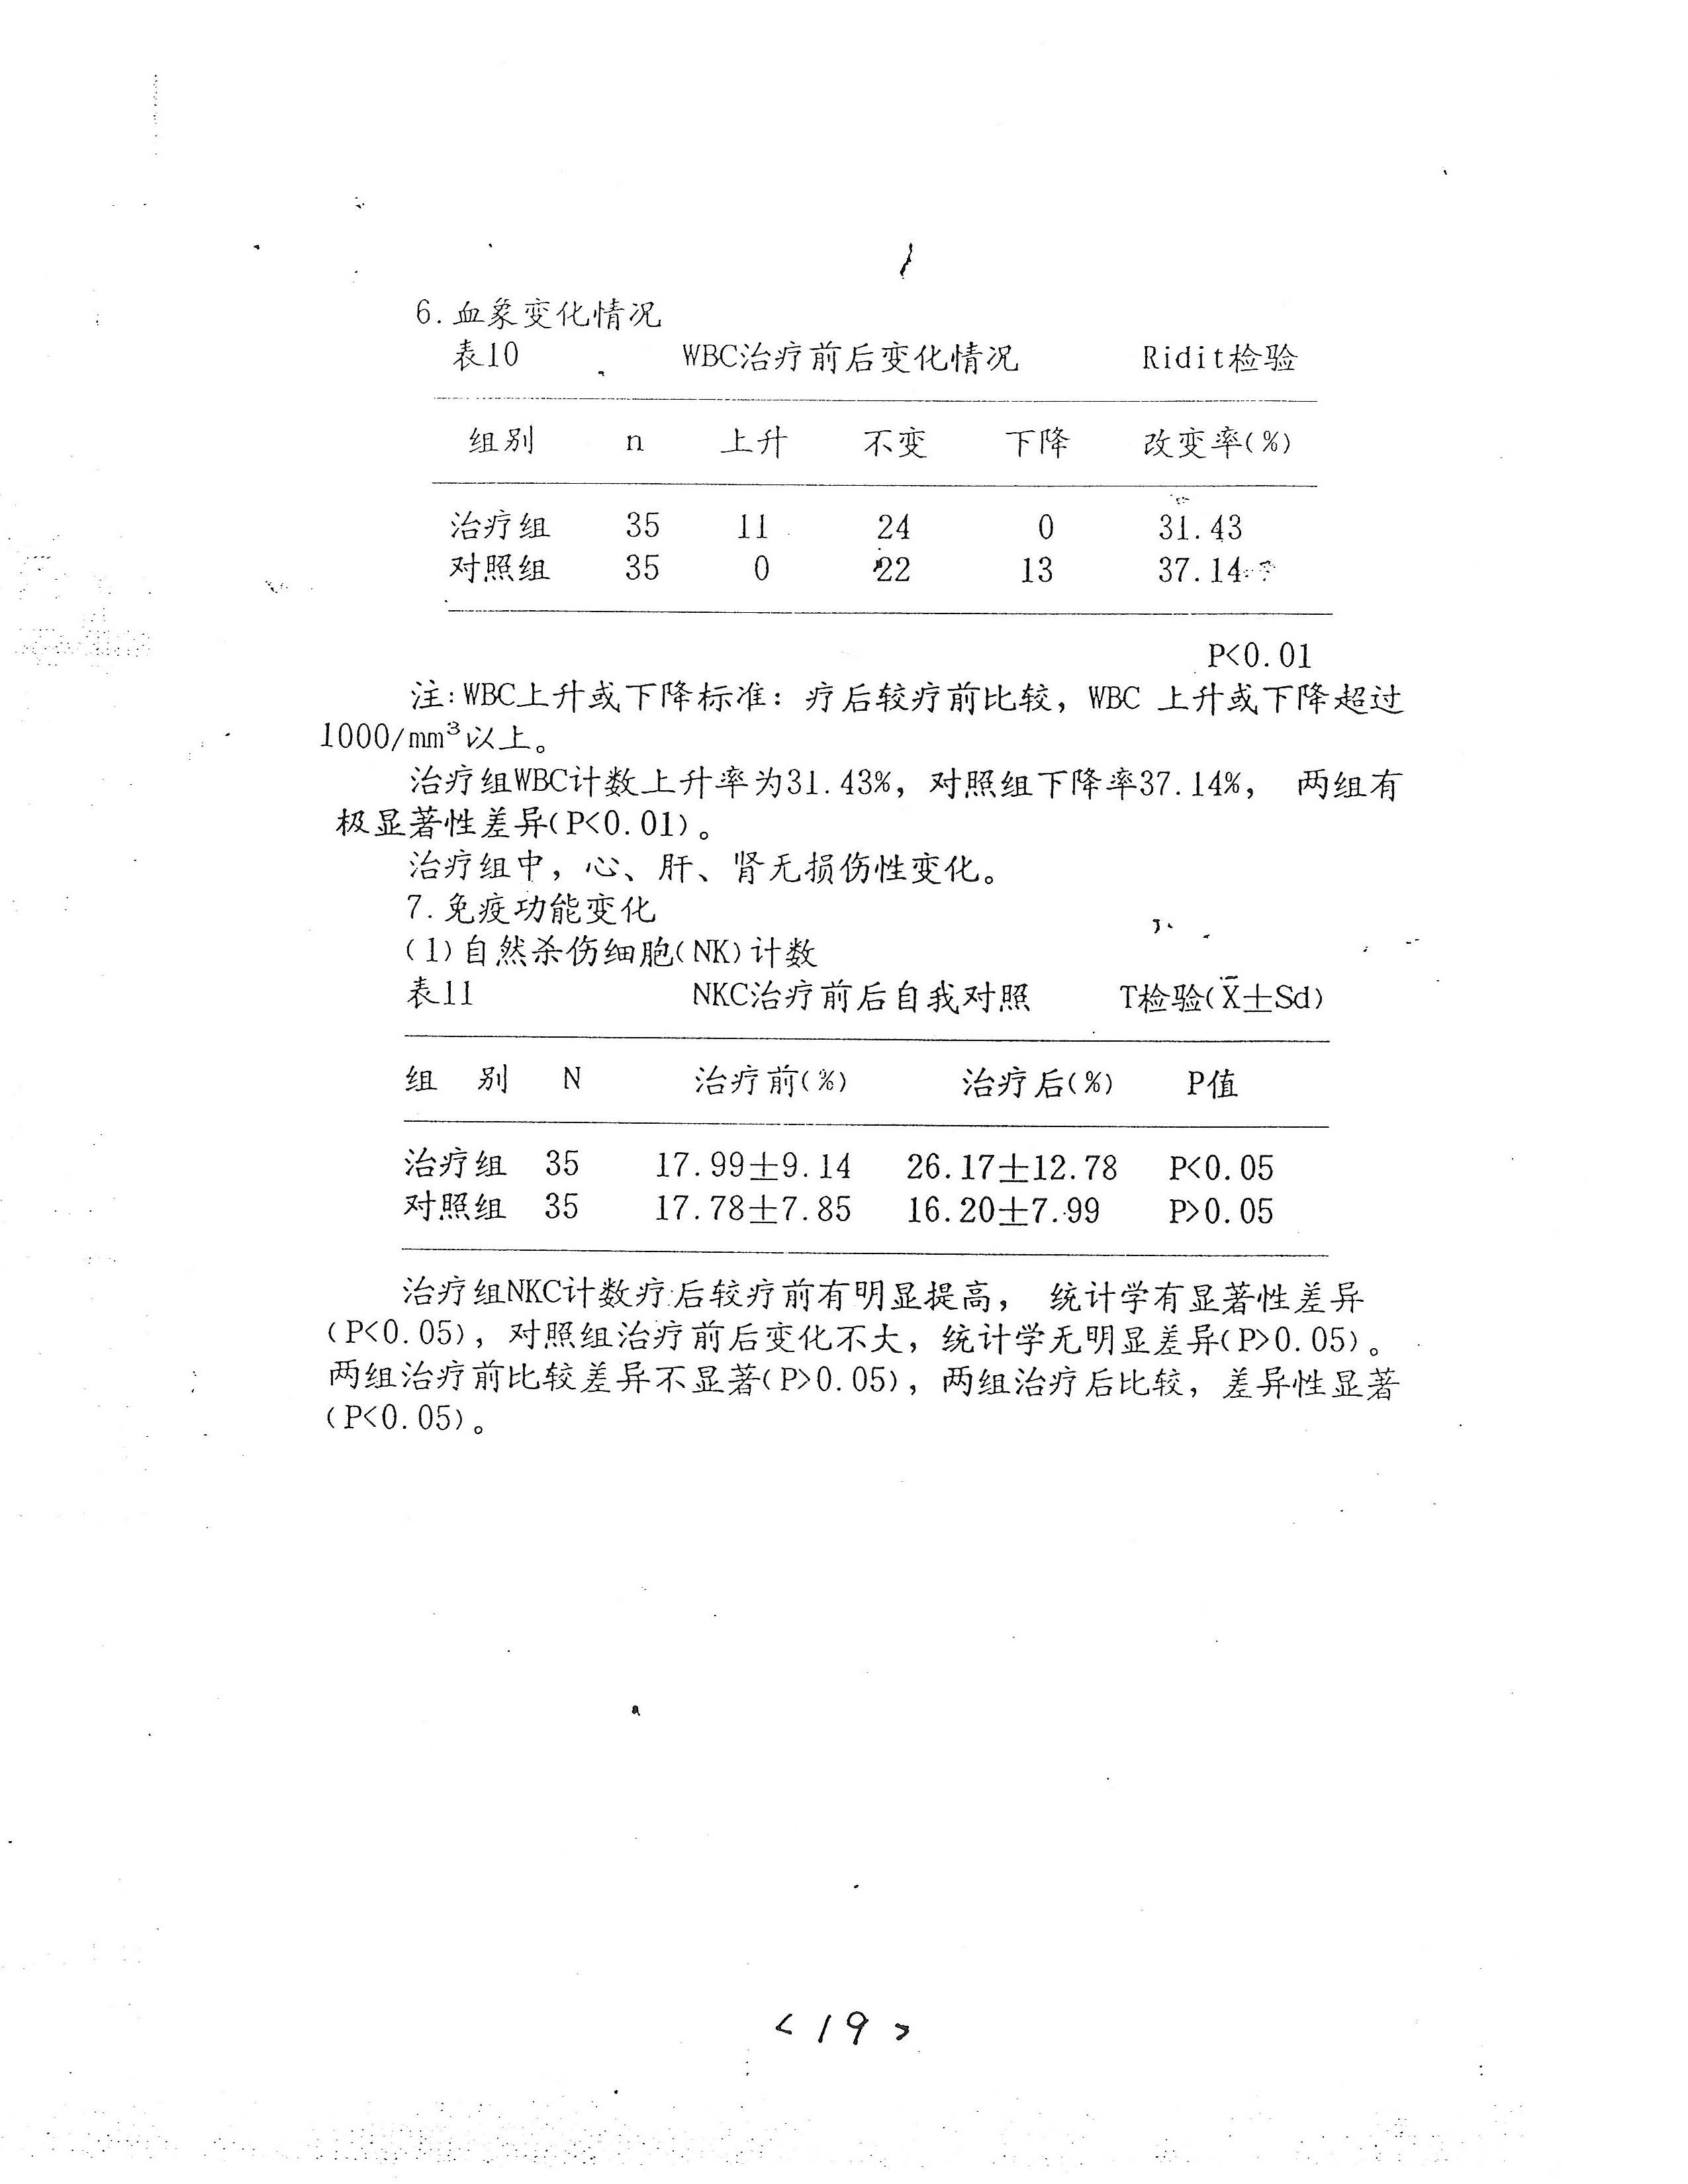 clinical_Page_21